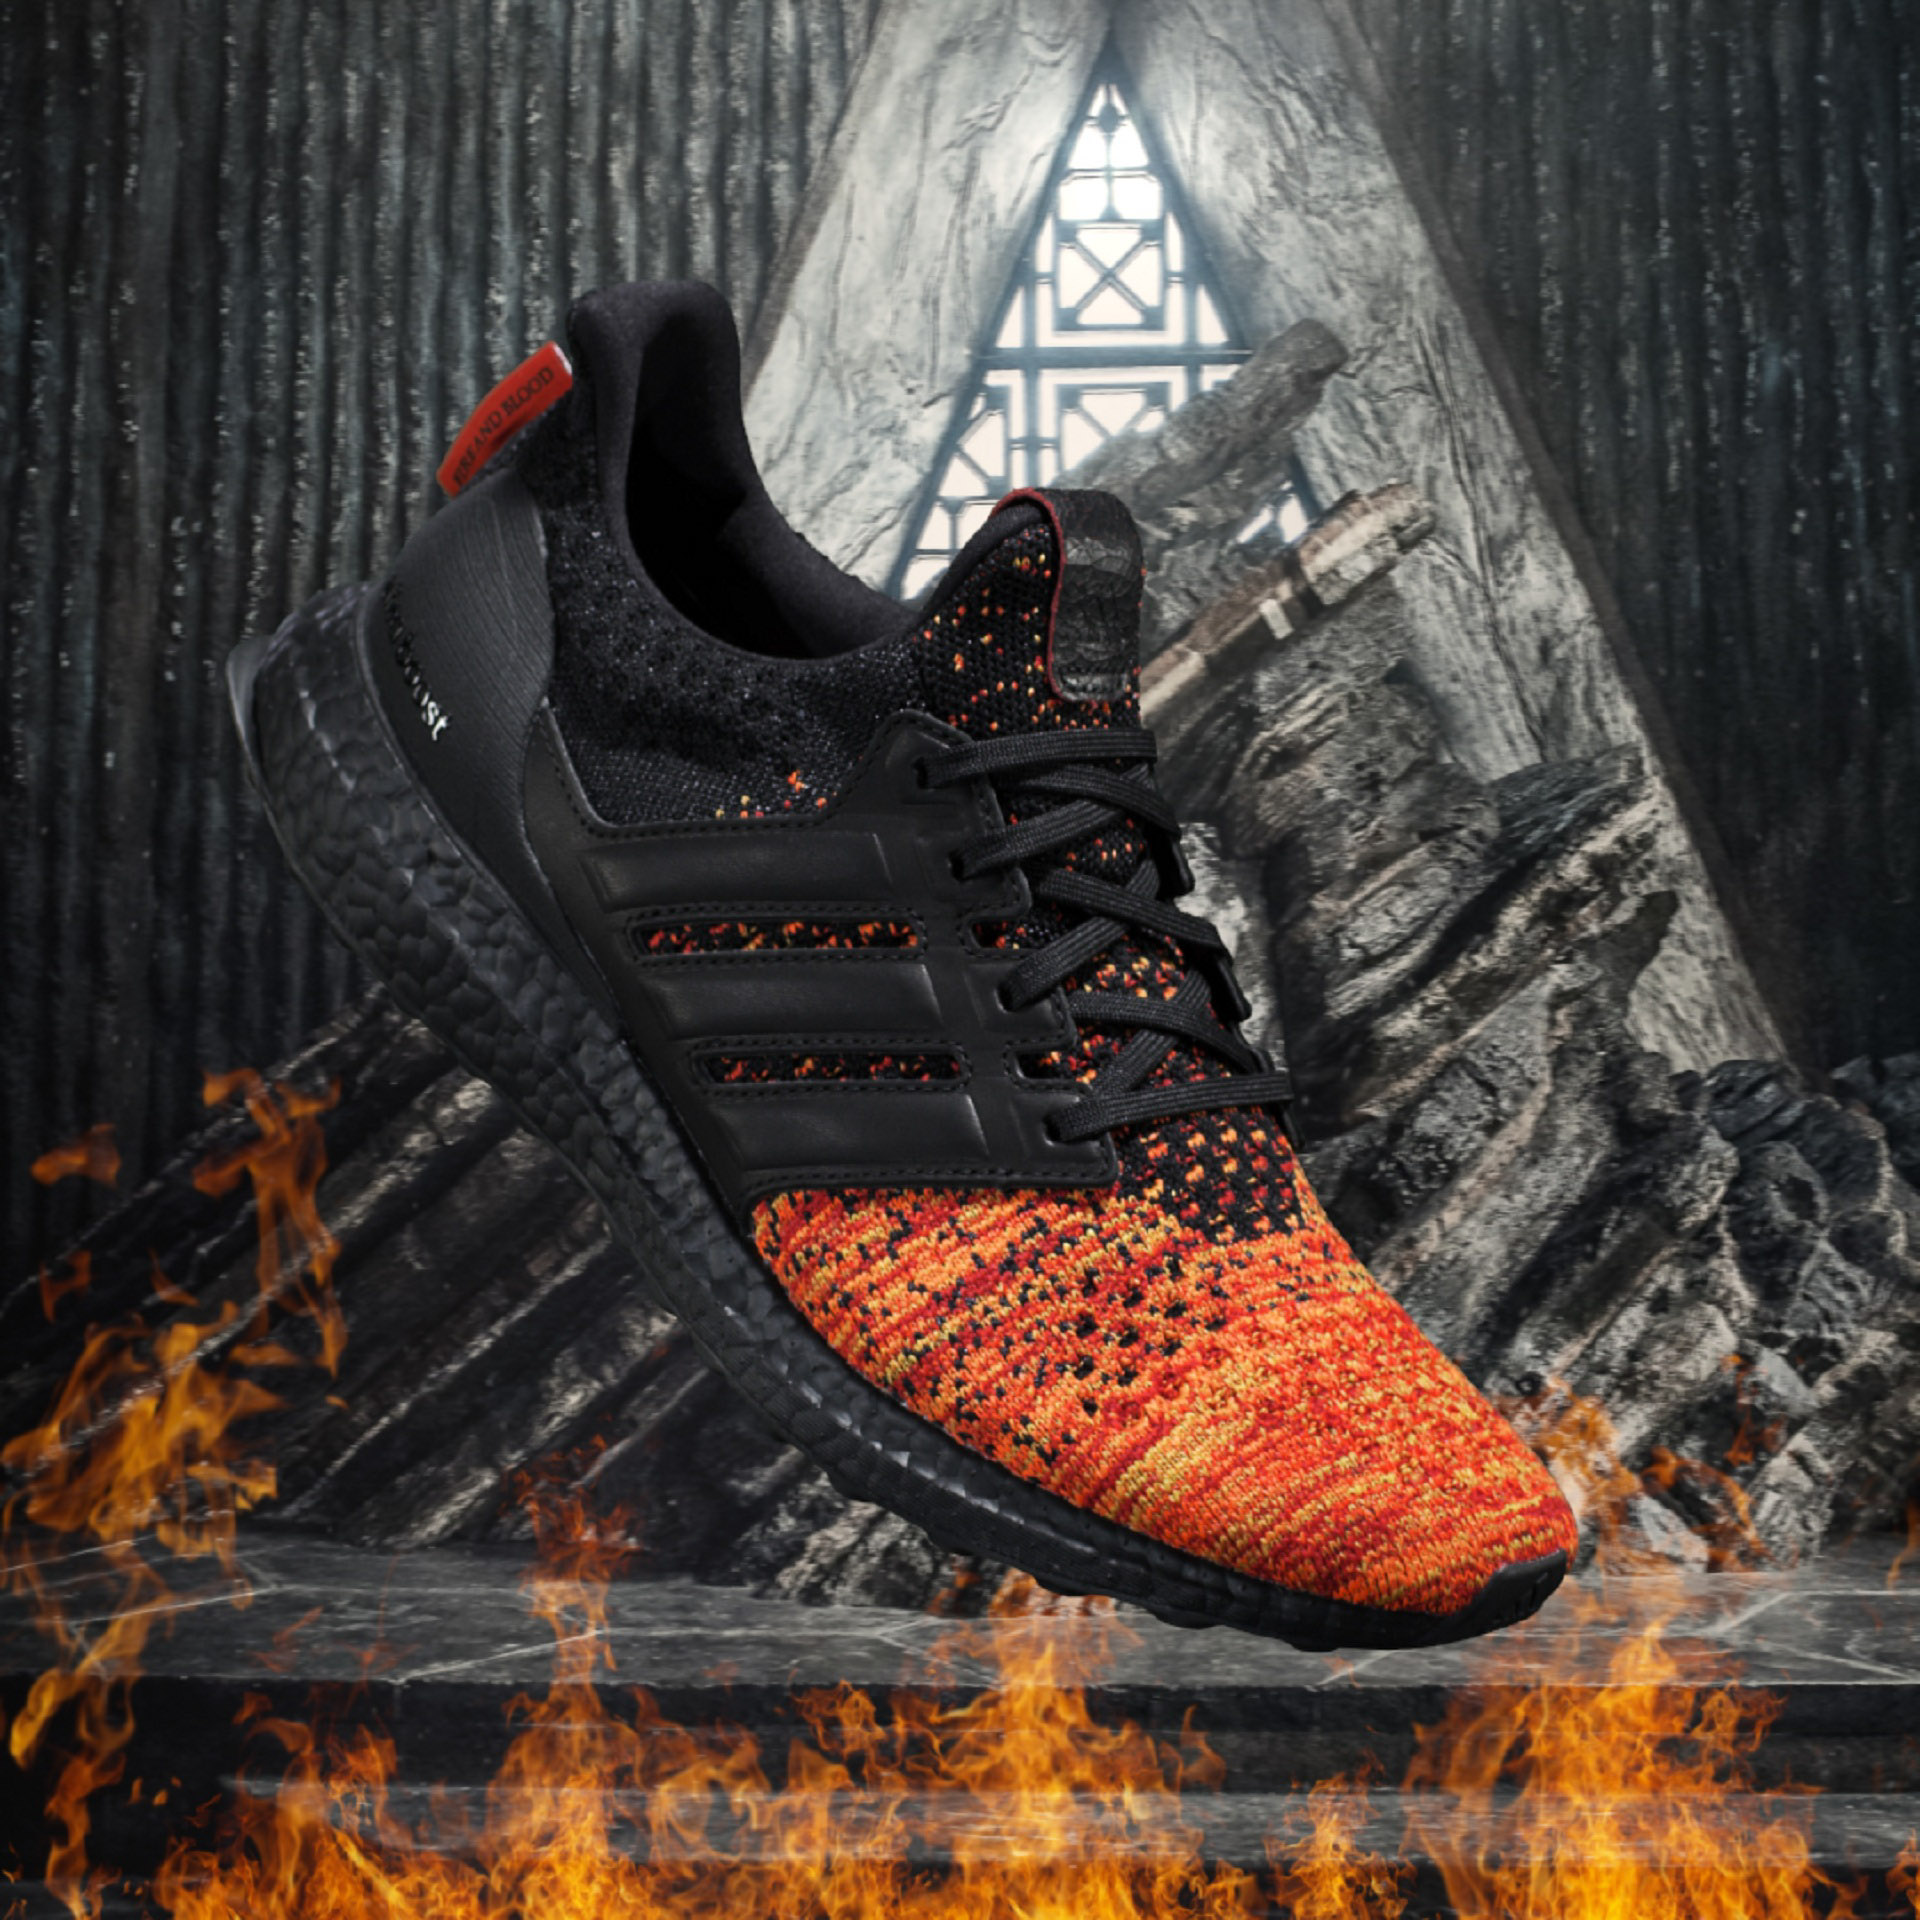 Game of Thrones x adidas UltraBOOST 8